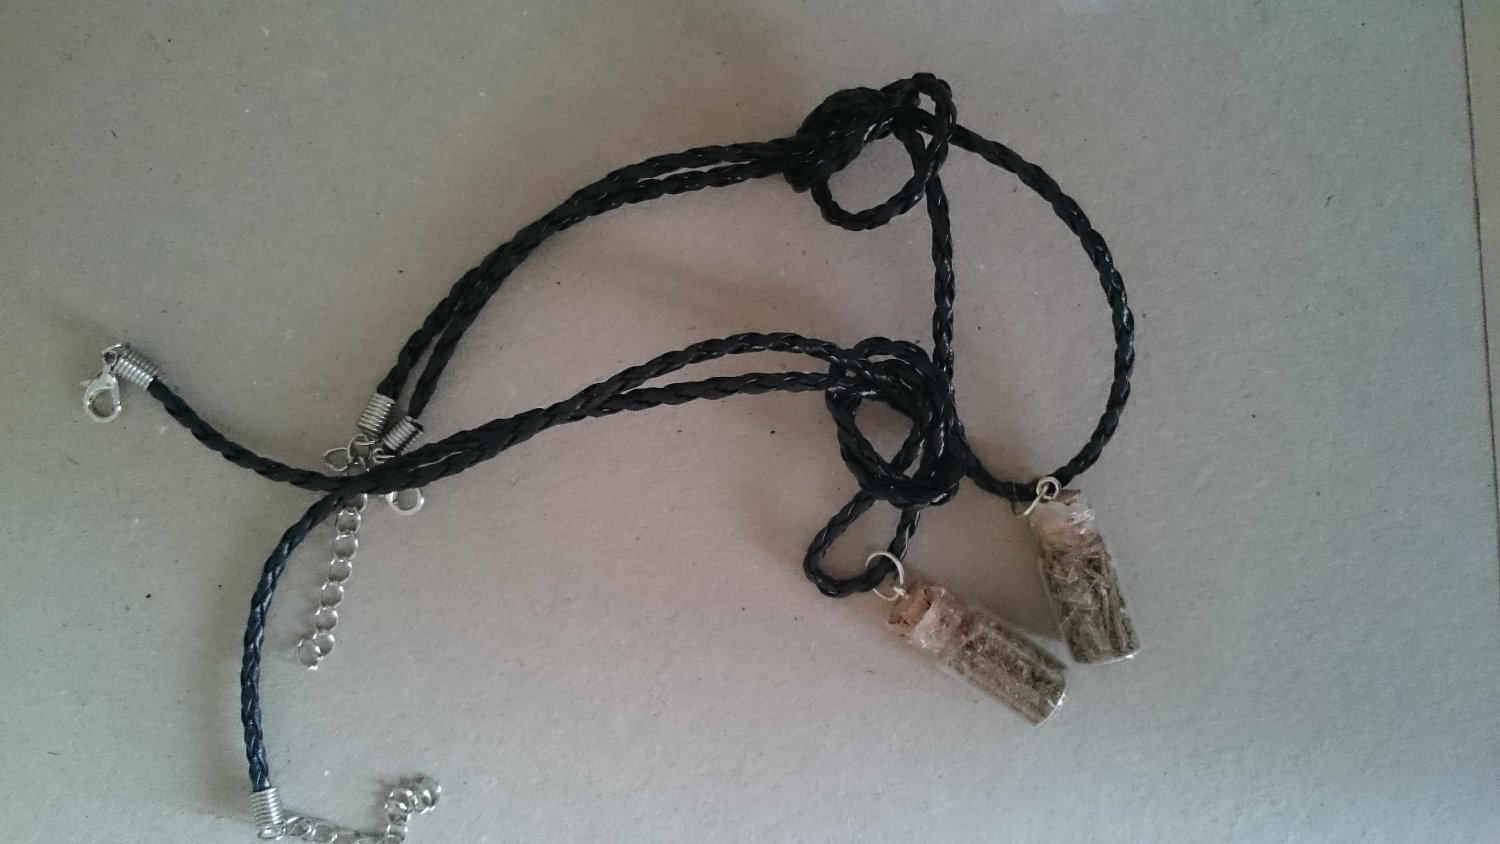 Witches Spell Bottle Pendant for Love  Wicca   Witchcraft   Pagan   Occult   Spells   Magick